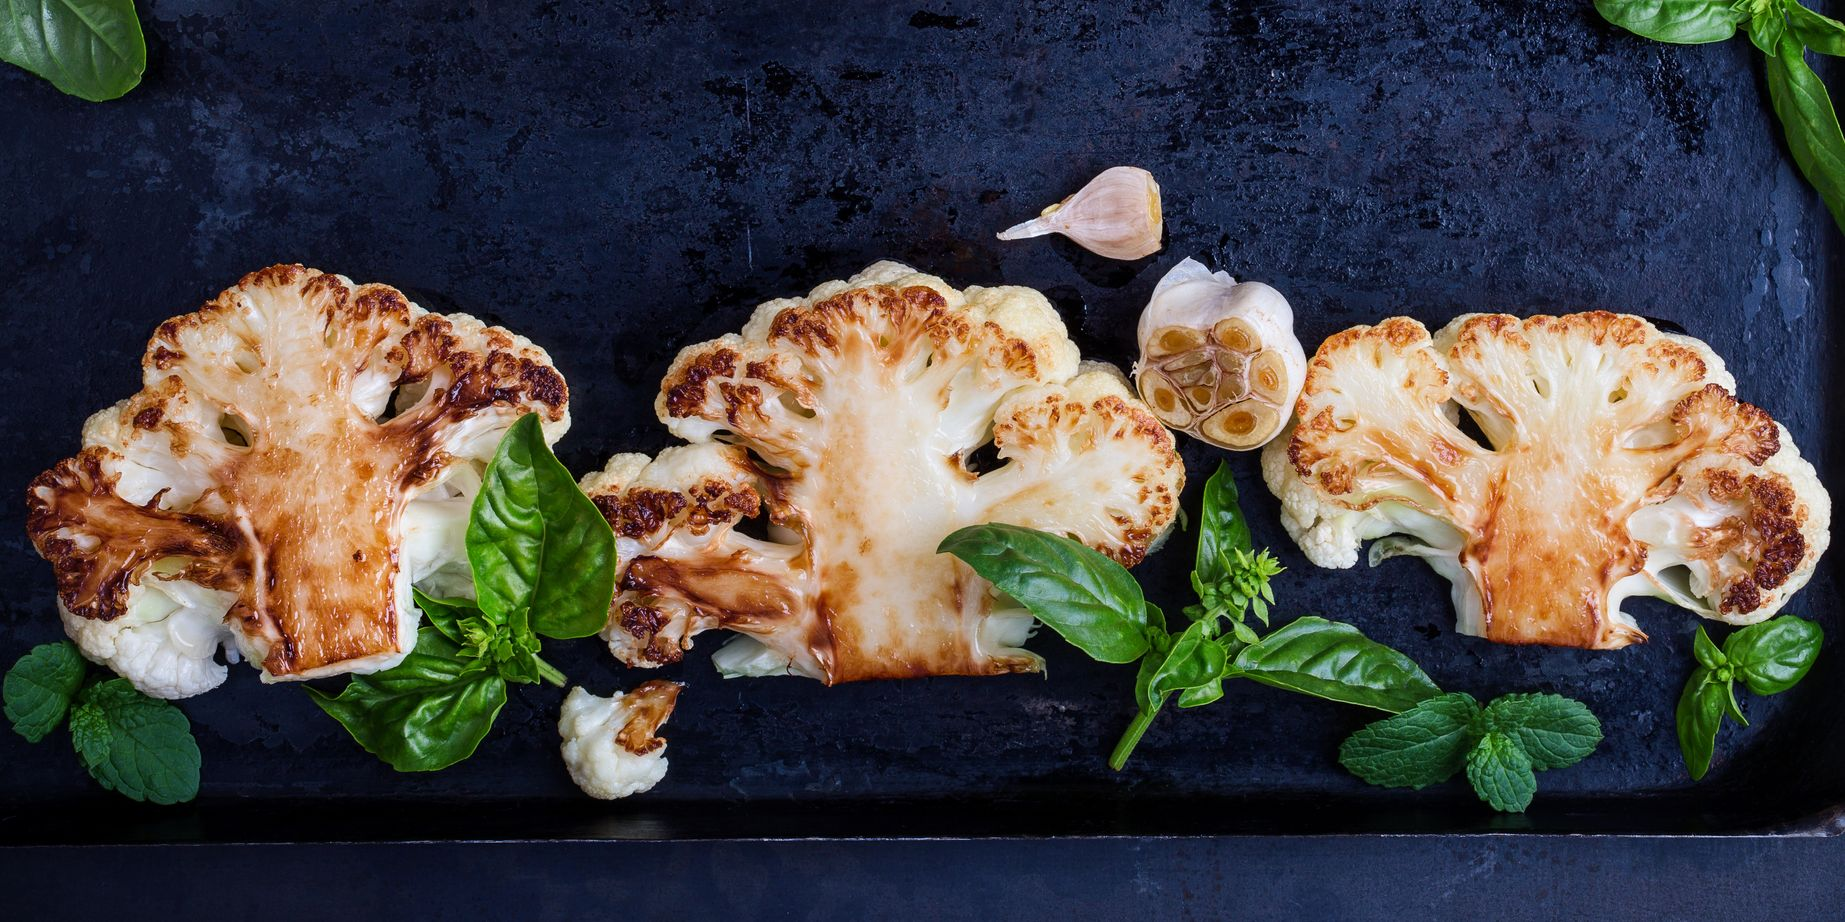 Roasted organic cauliflower steak on baking dish